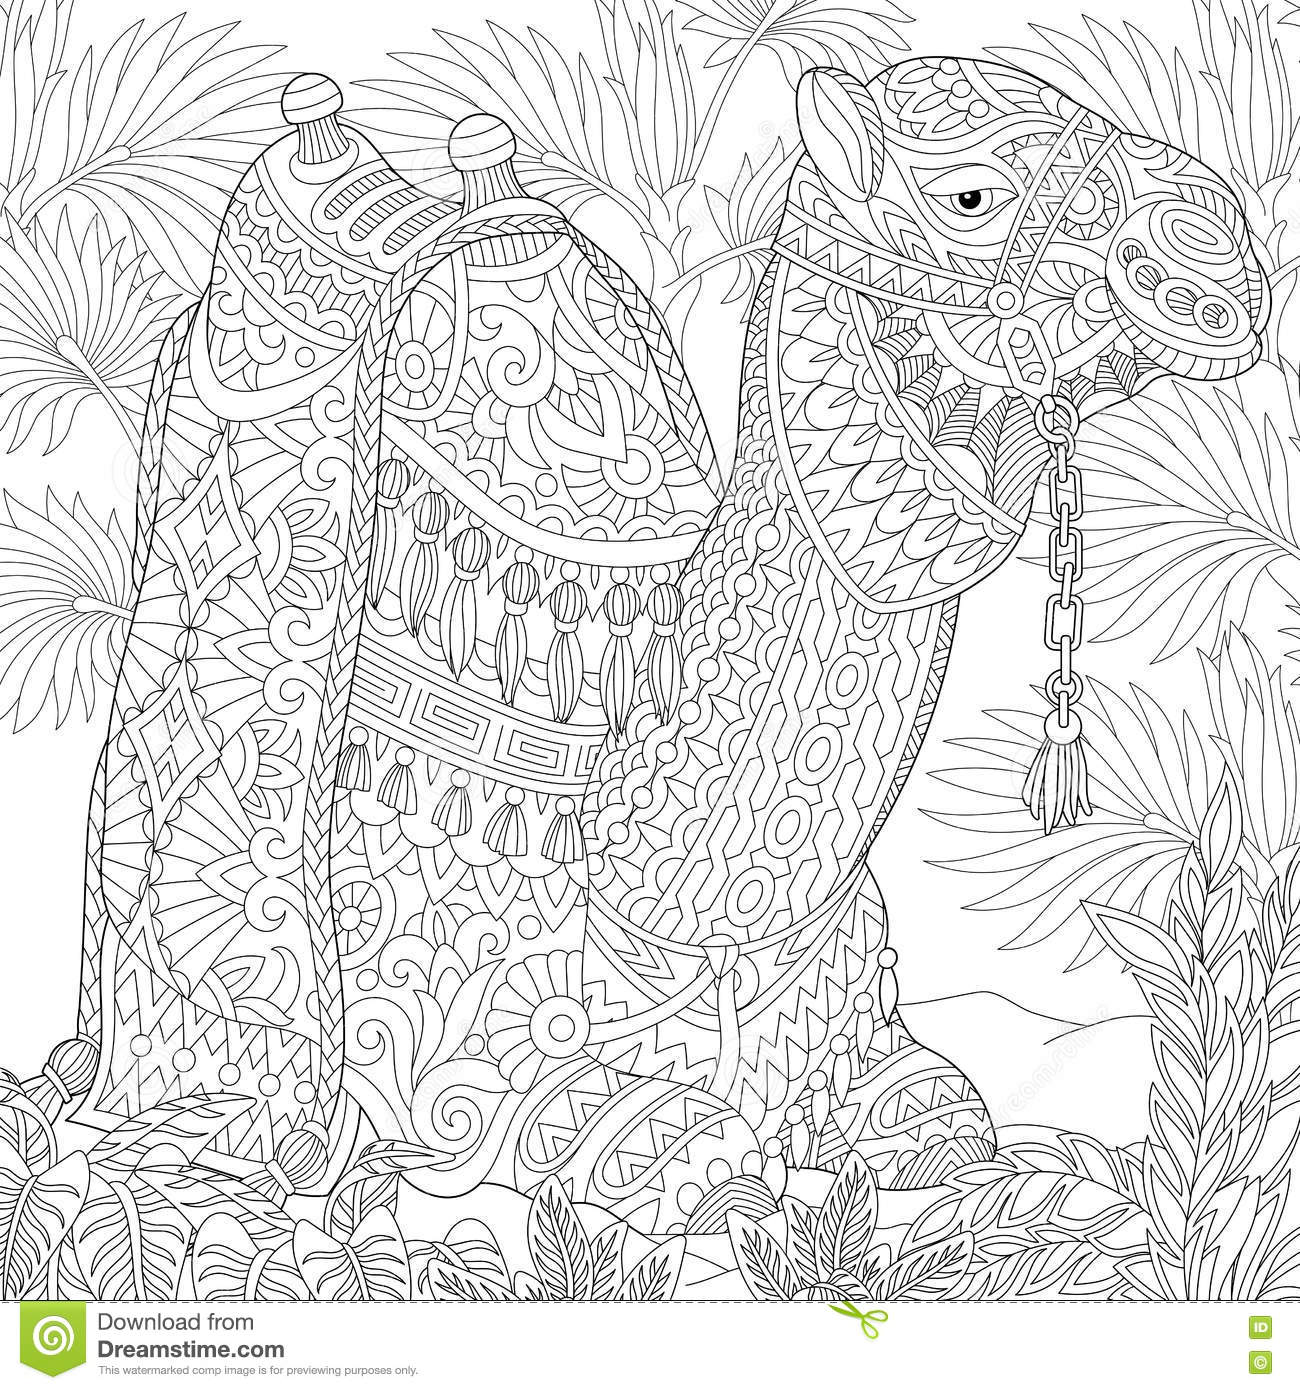 desert oasis coloring pages - photo#30